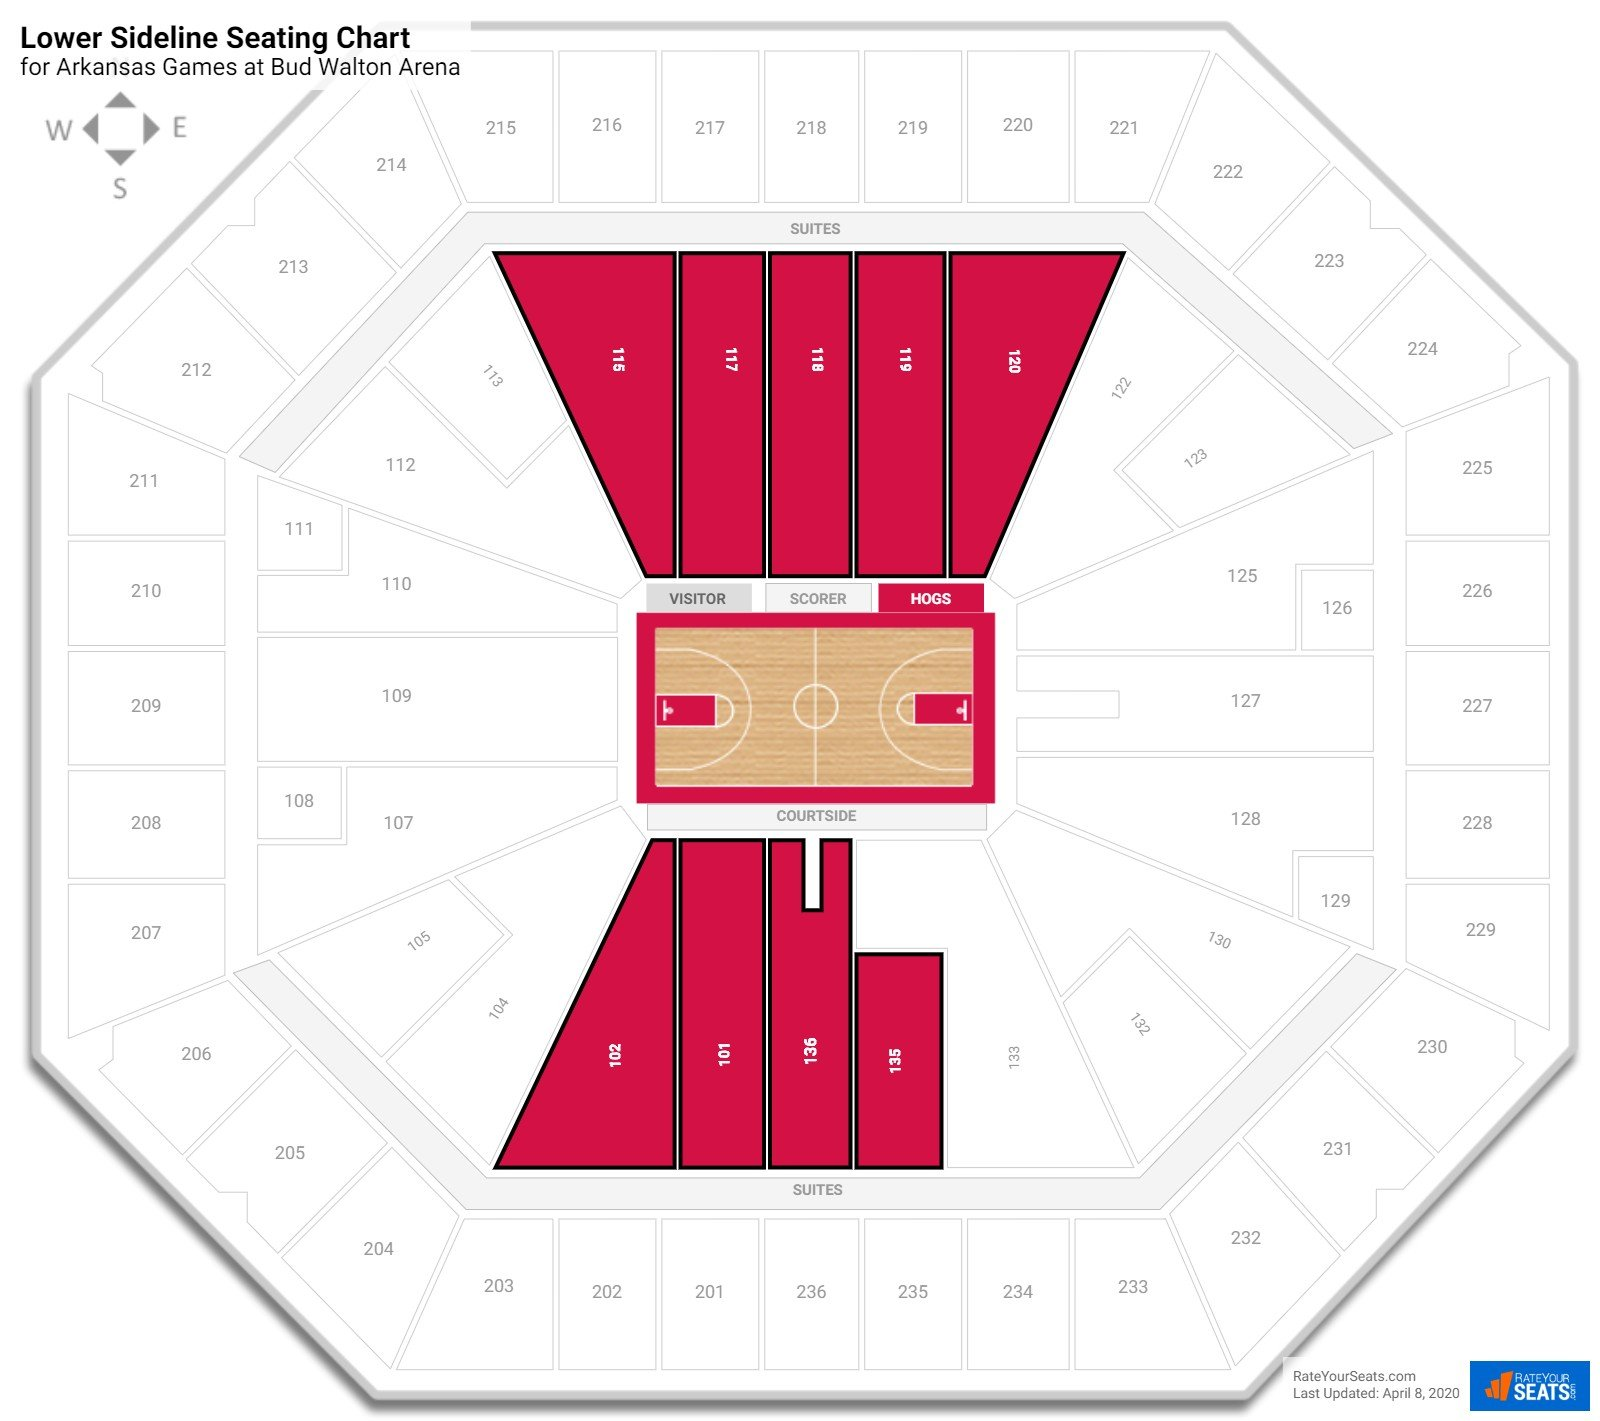 Bud Walton Arena Lower Sideline seating chart